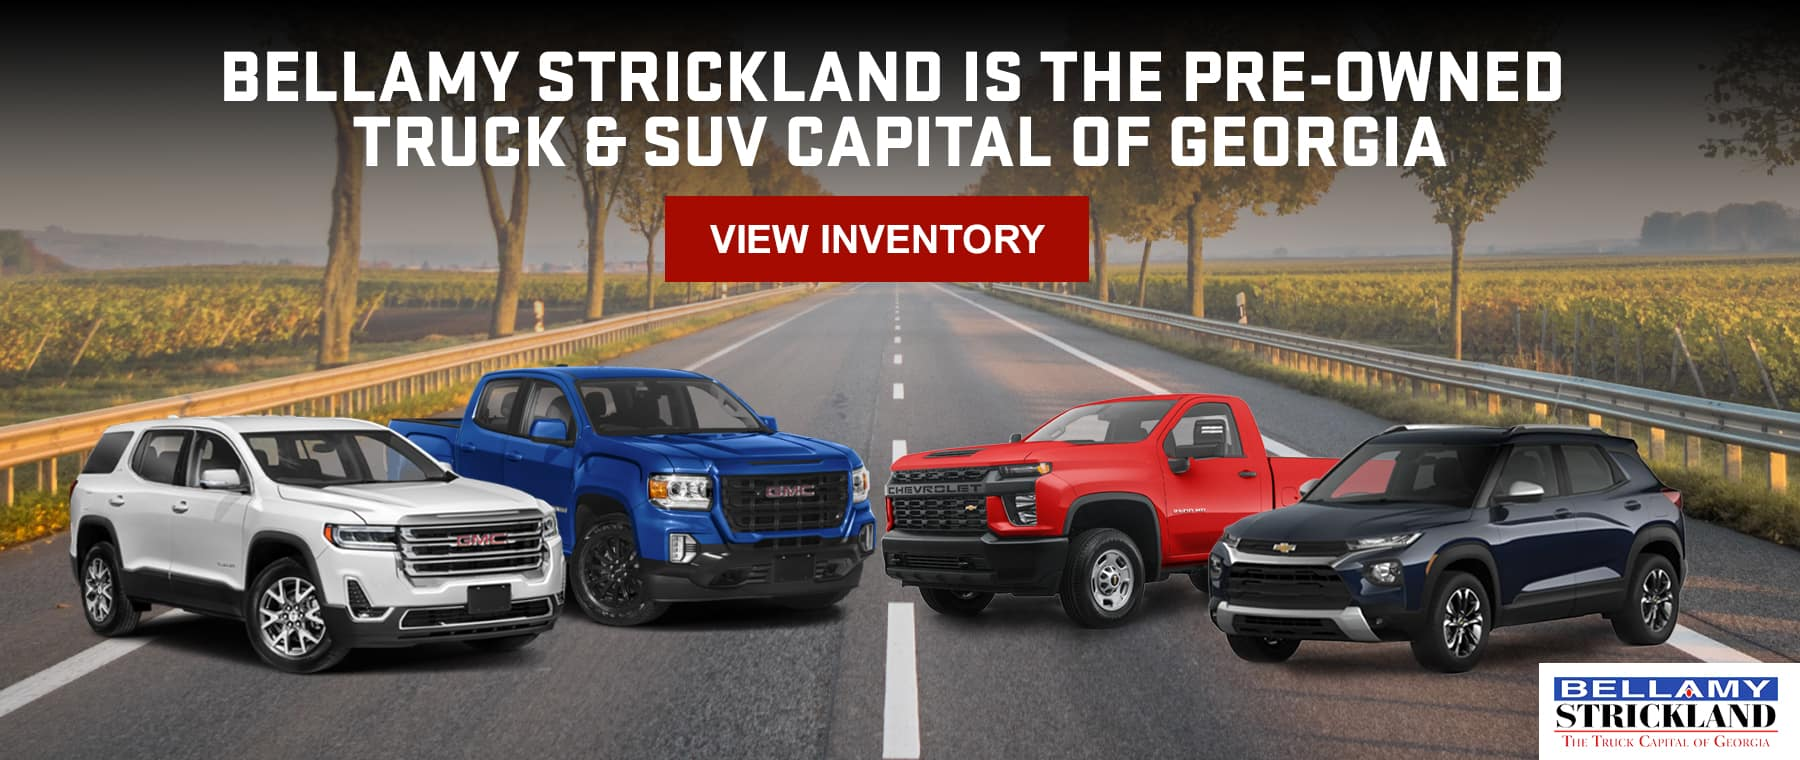 Bellamy Strickland is the Pre-owned Truck & SUV Capital of Georgia